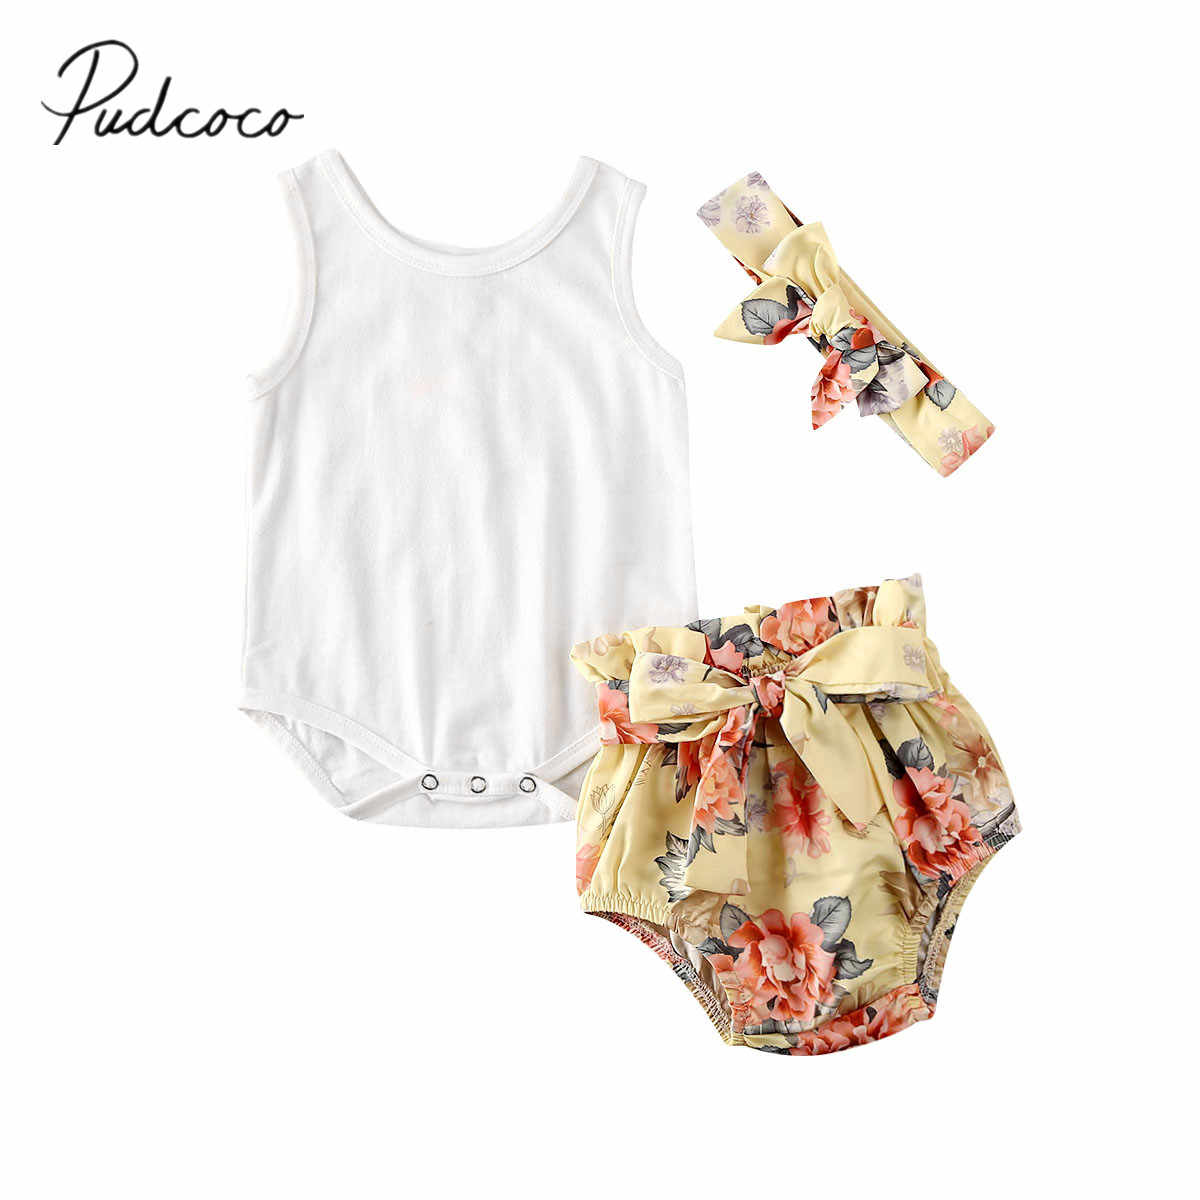 2020 Baby Summer Clothing Infant Baby Girl Sleeveless Romper Jumpsuit PP Floral Shorts Outfit Headband Clothes 3PCS